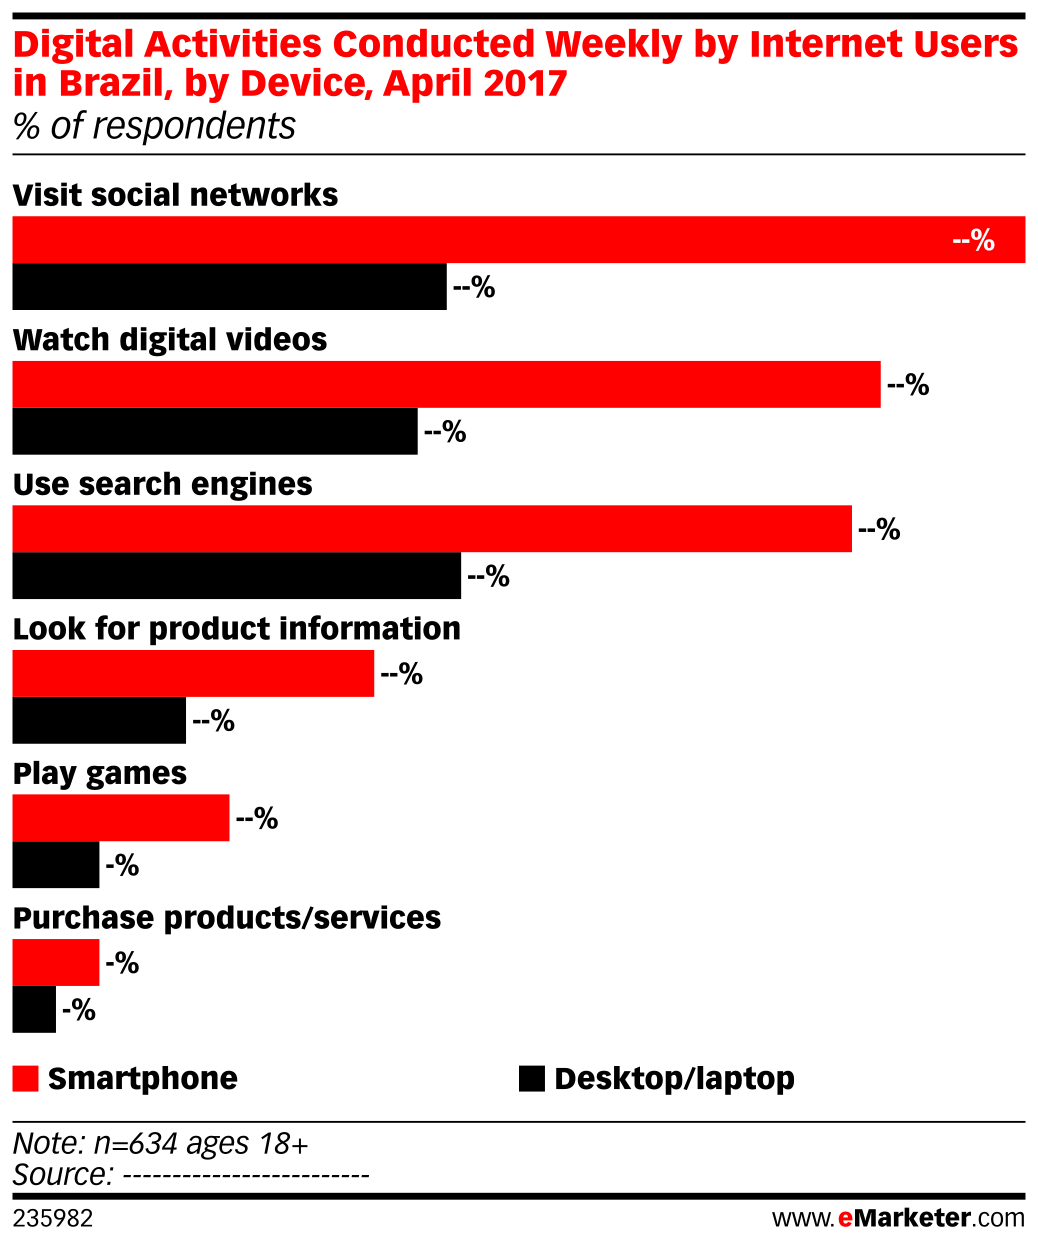 Digital Activities Conducted Weekly by Internet Users in Brazil, by Device, April 2017 (% of respondents)